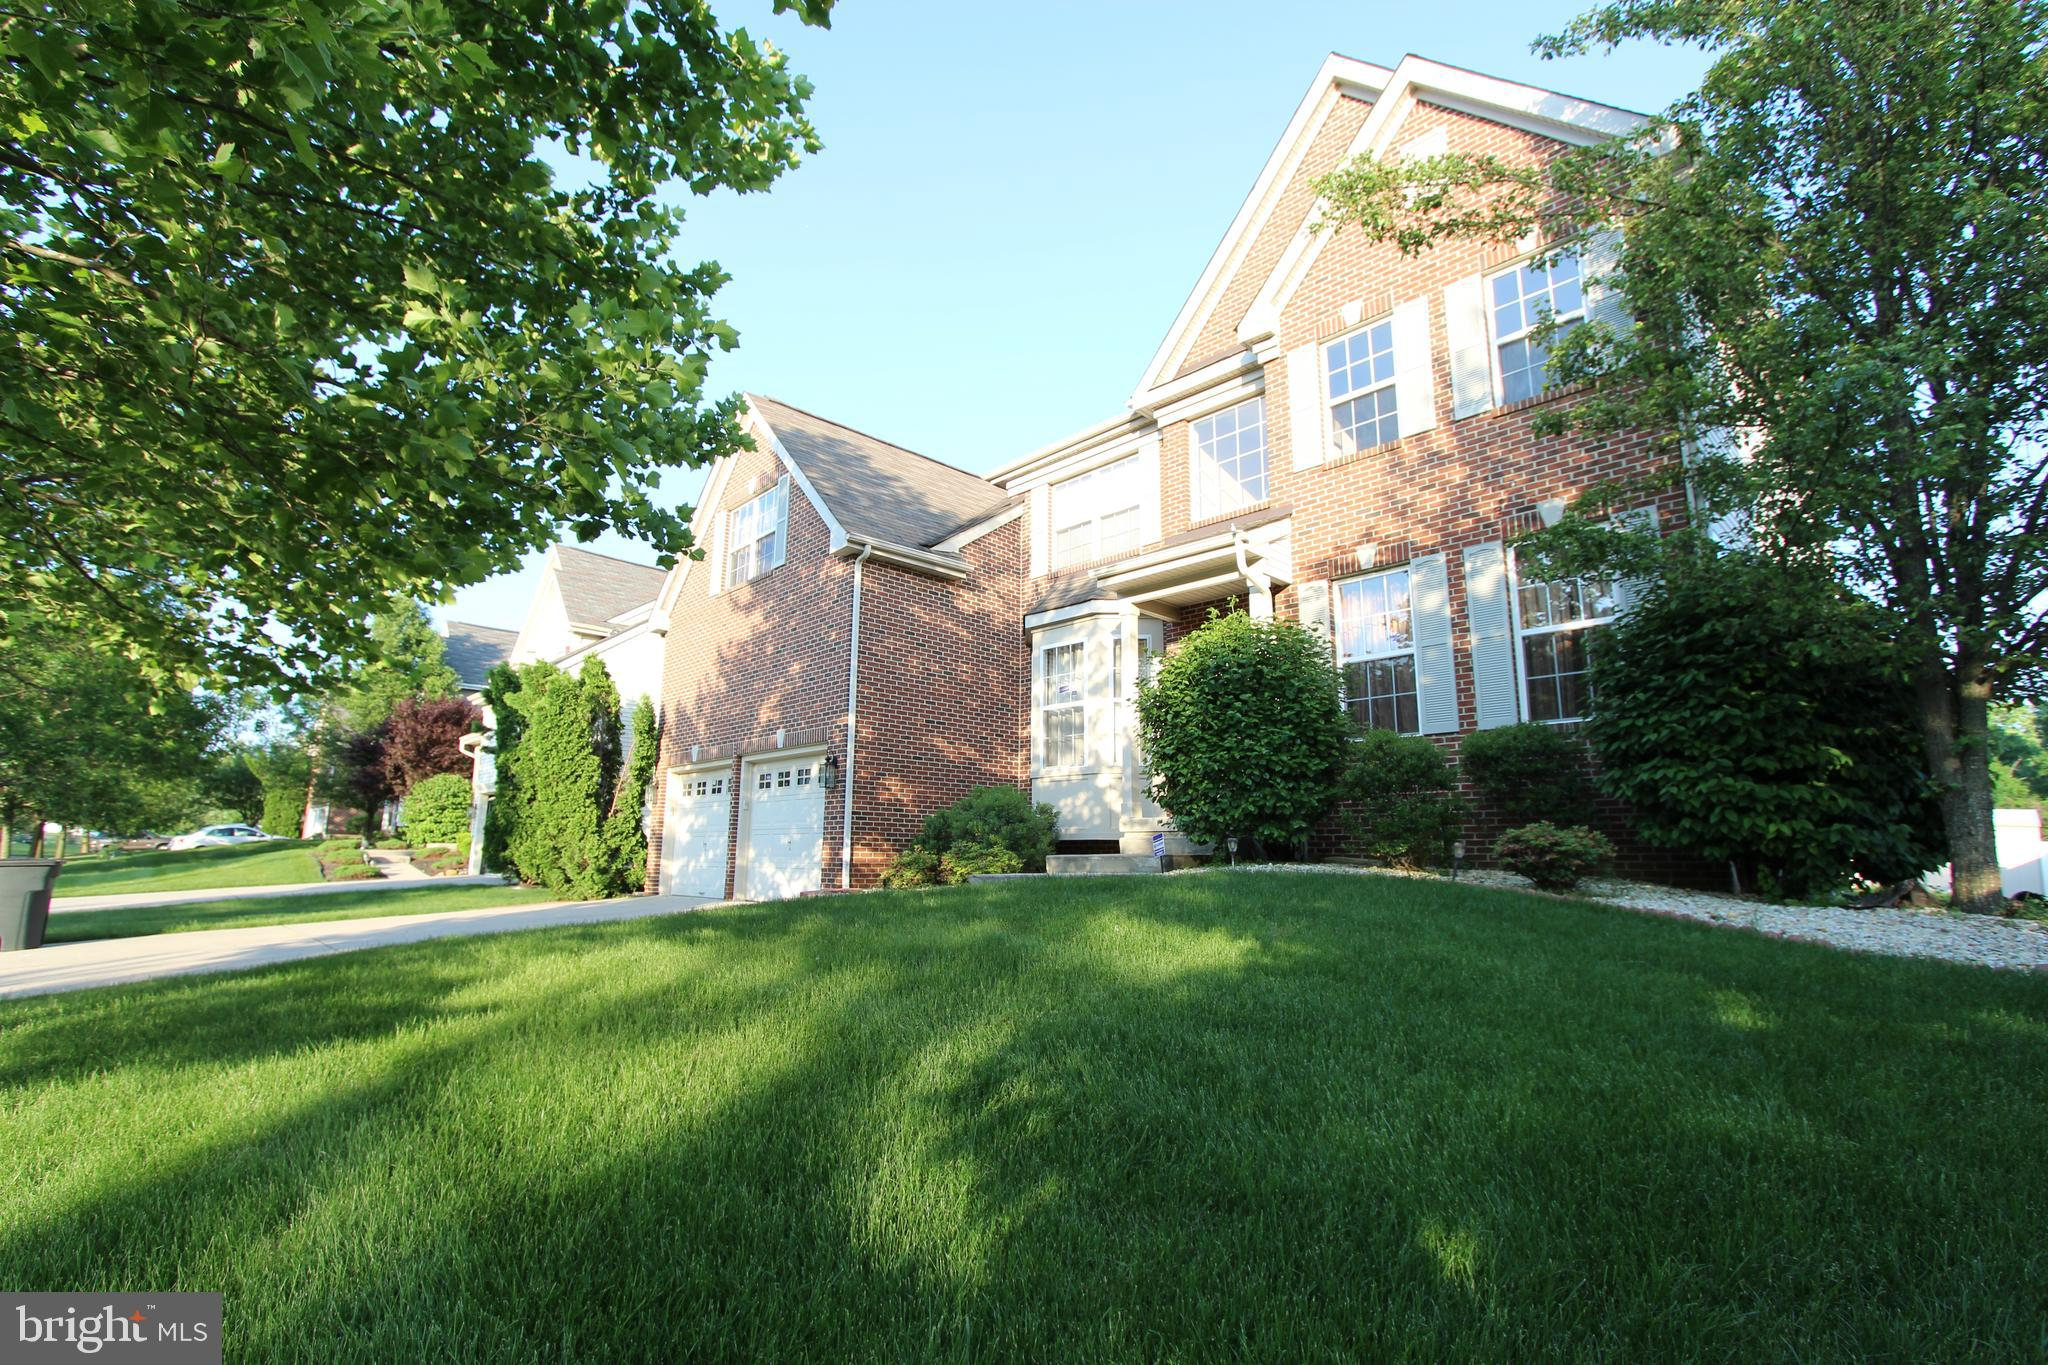 35 MEADOW RUN ROAD, BORDENTOWN, NJ 08505